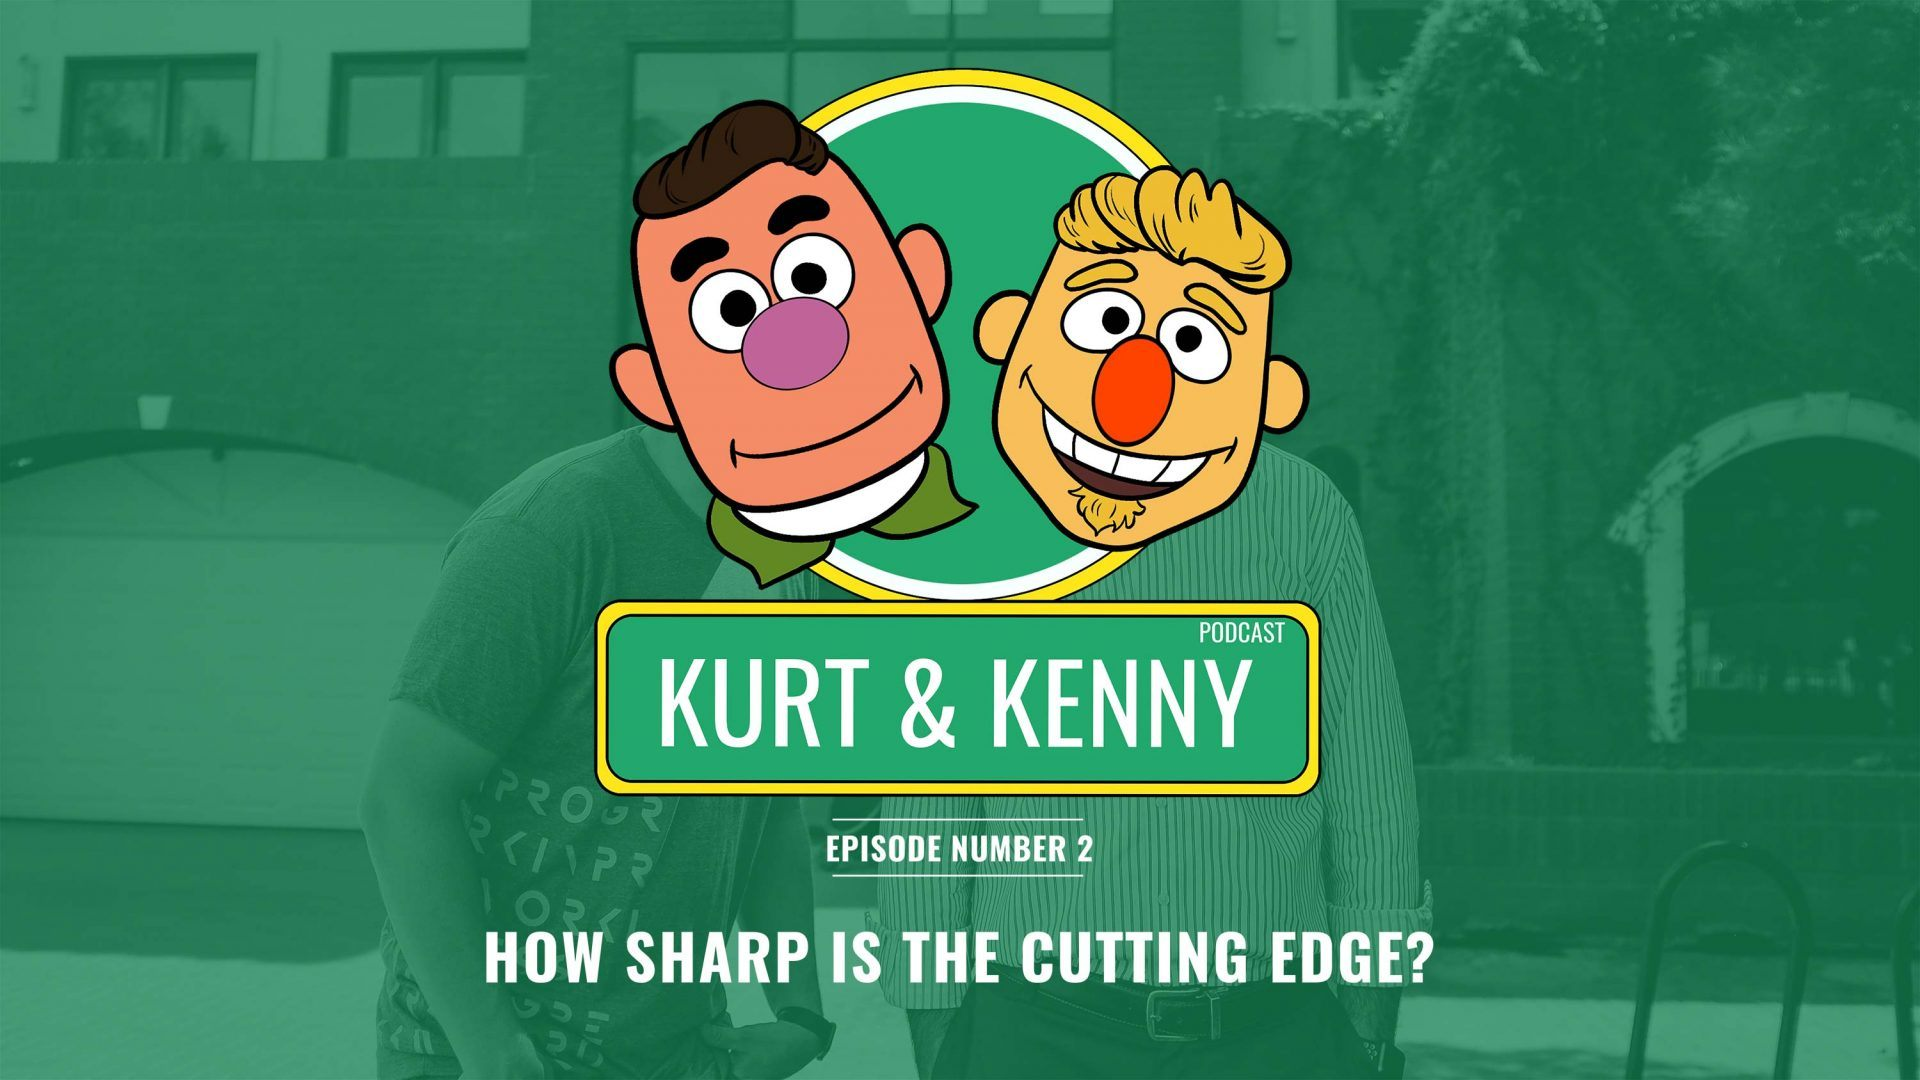 EP 02 How sharp is the cutting edge?